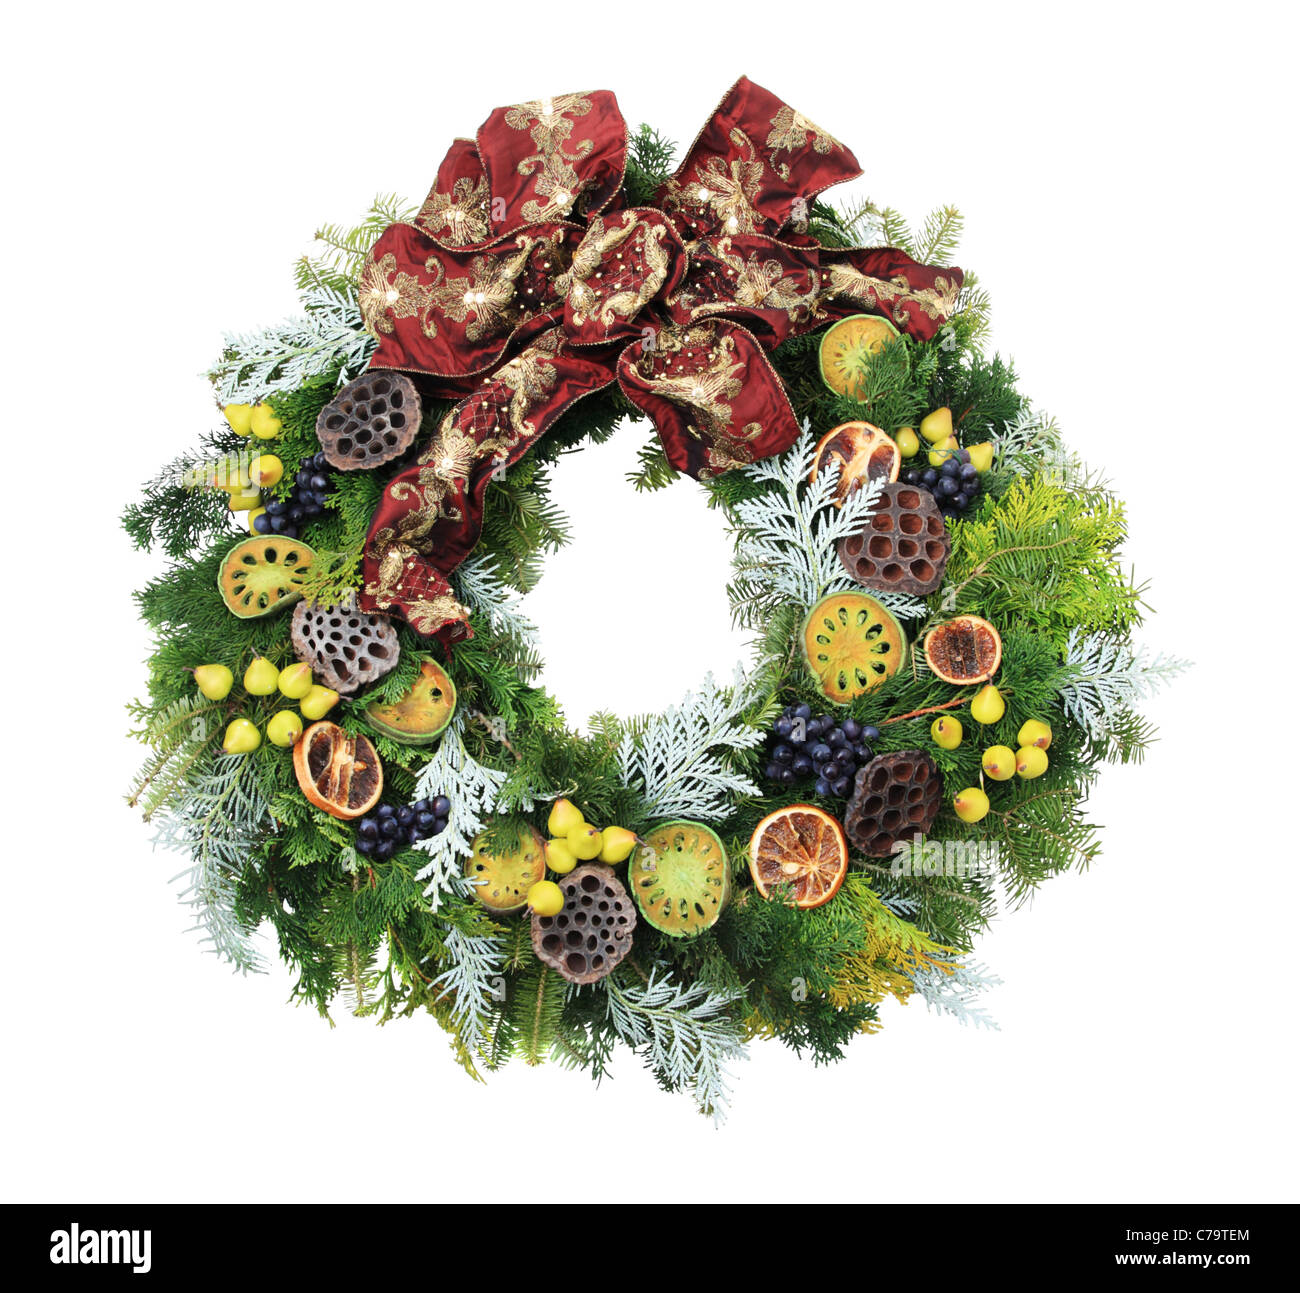 christmas wreath with mini pears and other decorations and a red bow isolated on white - Stock Image